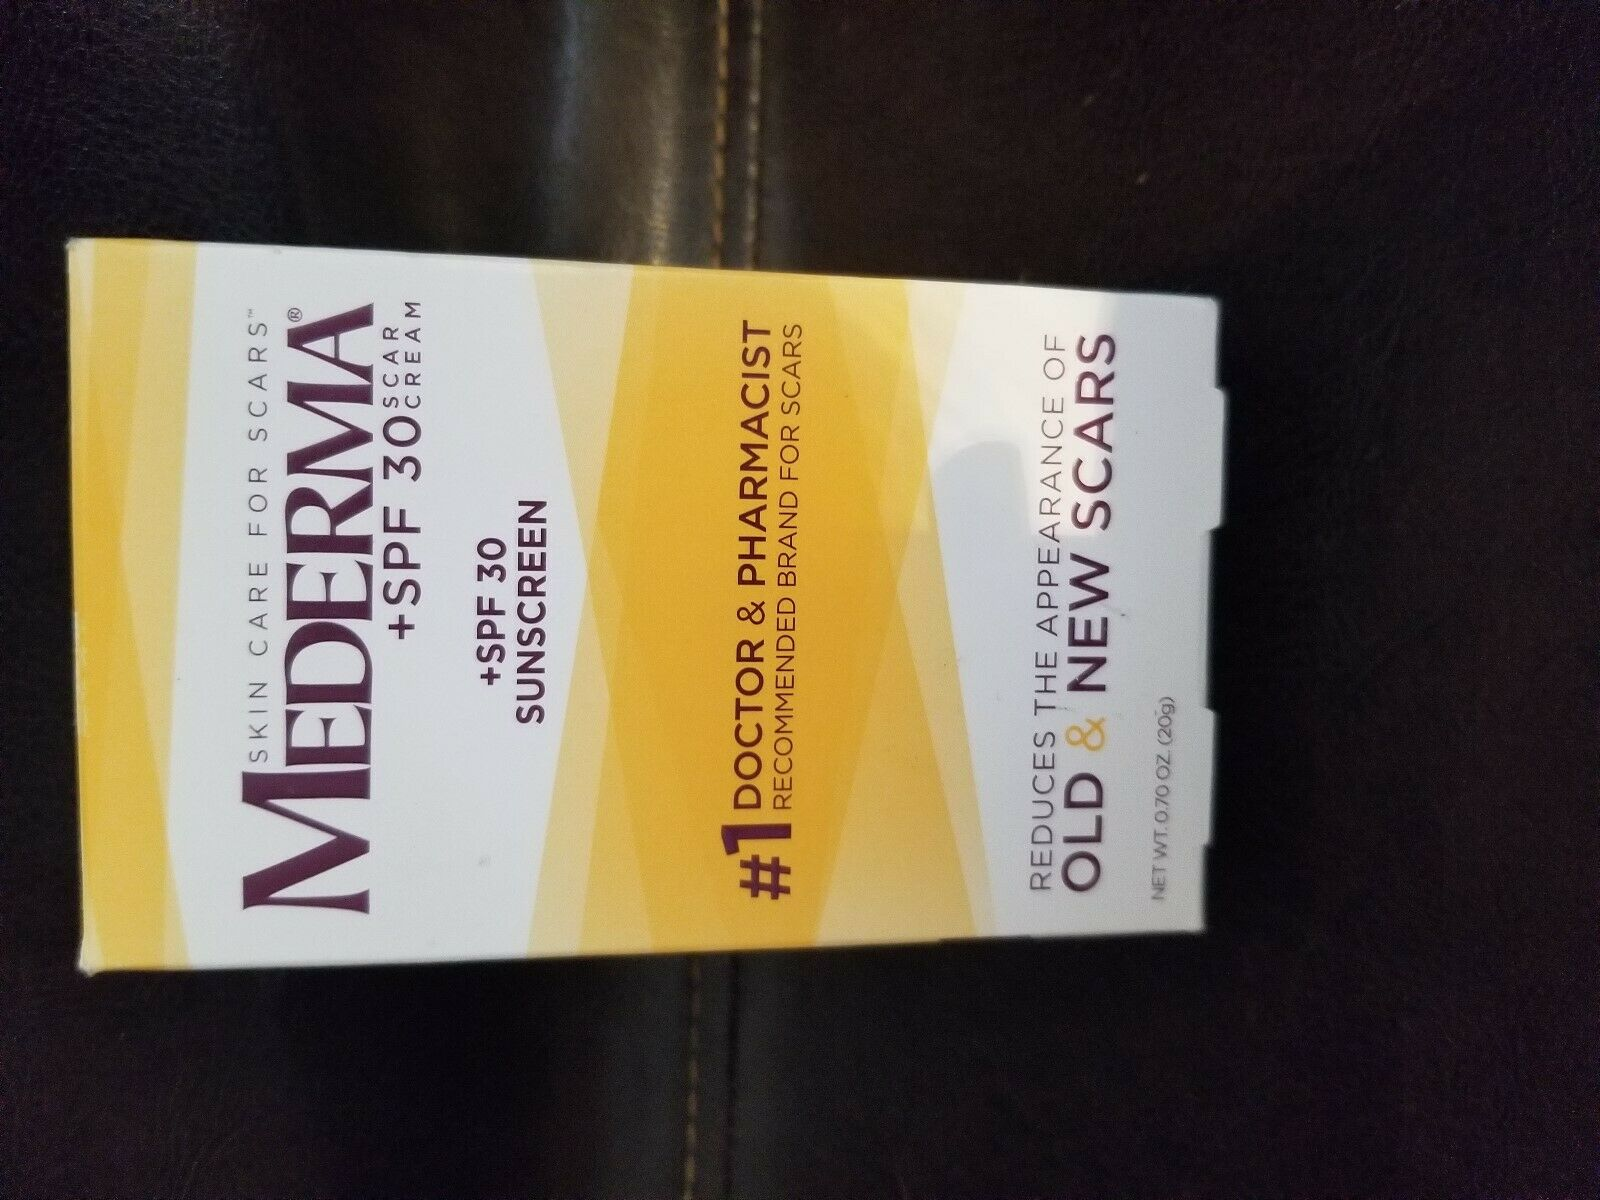 Mederma Scar Cream Plus Spf 30 7 Oz 20g Exp1 2021 186295000687 Ebay